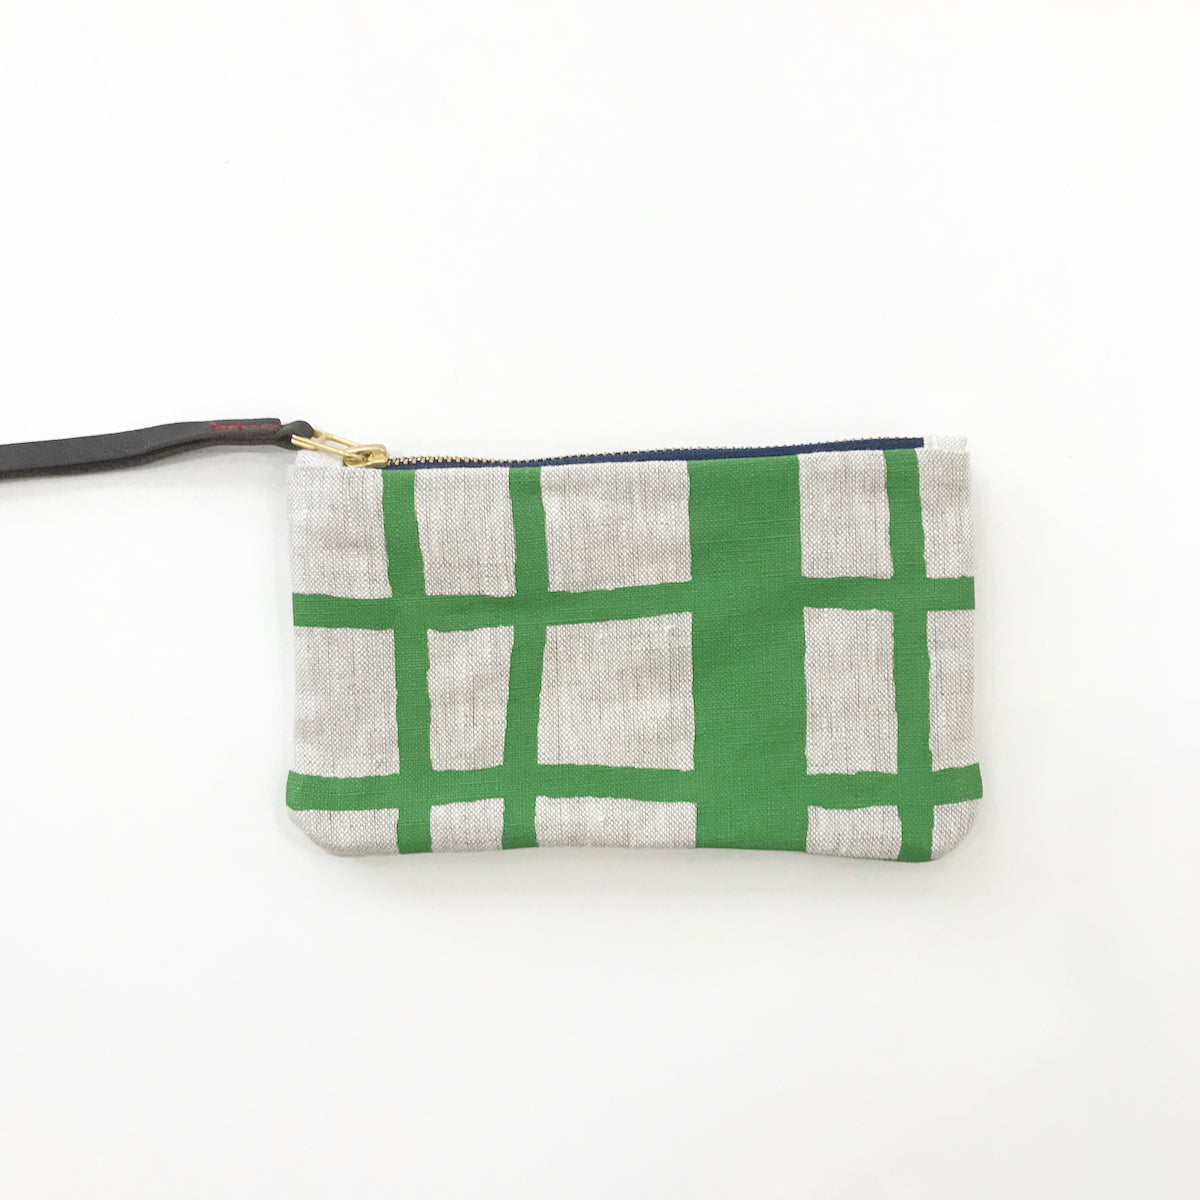 SHIPS NOW! KELLY PICNIC WRISTLET ZIPPER BAG